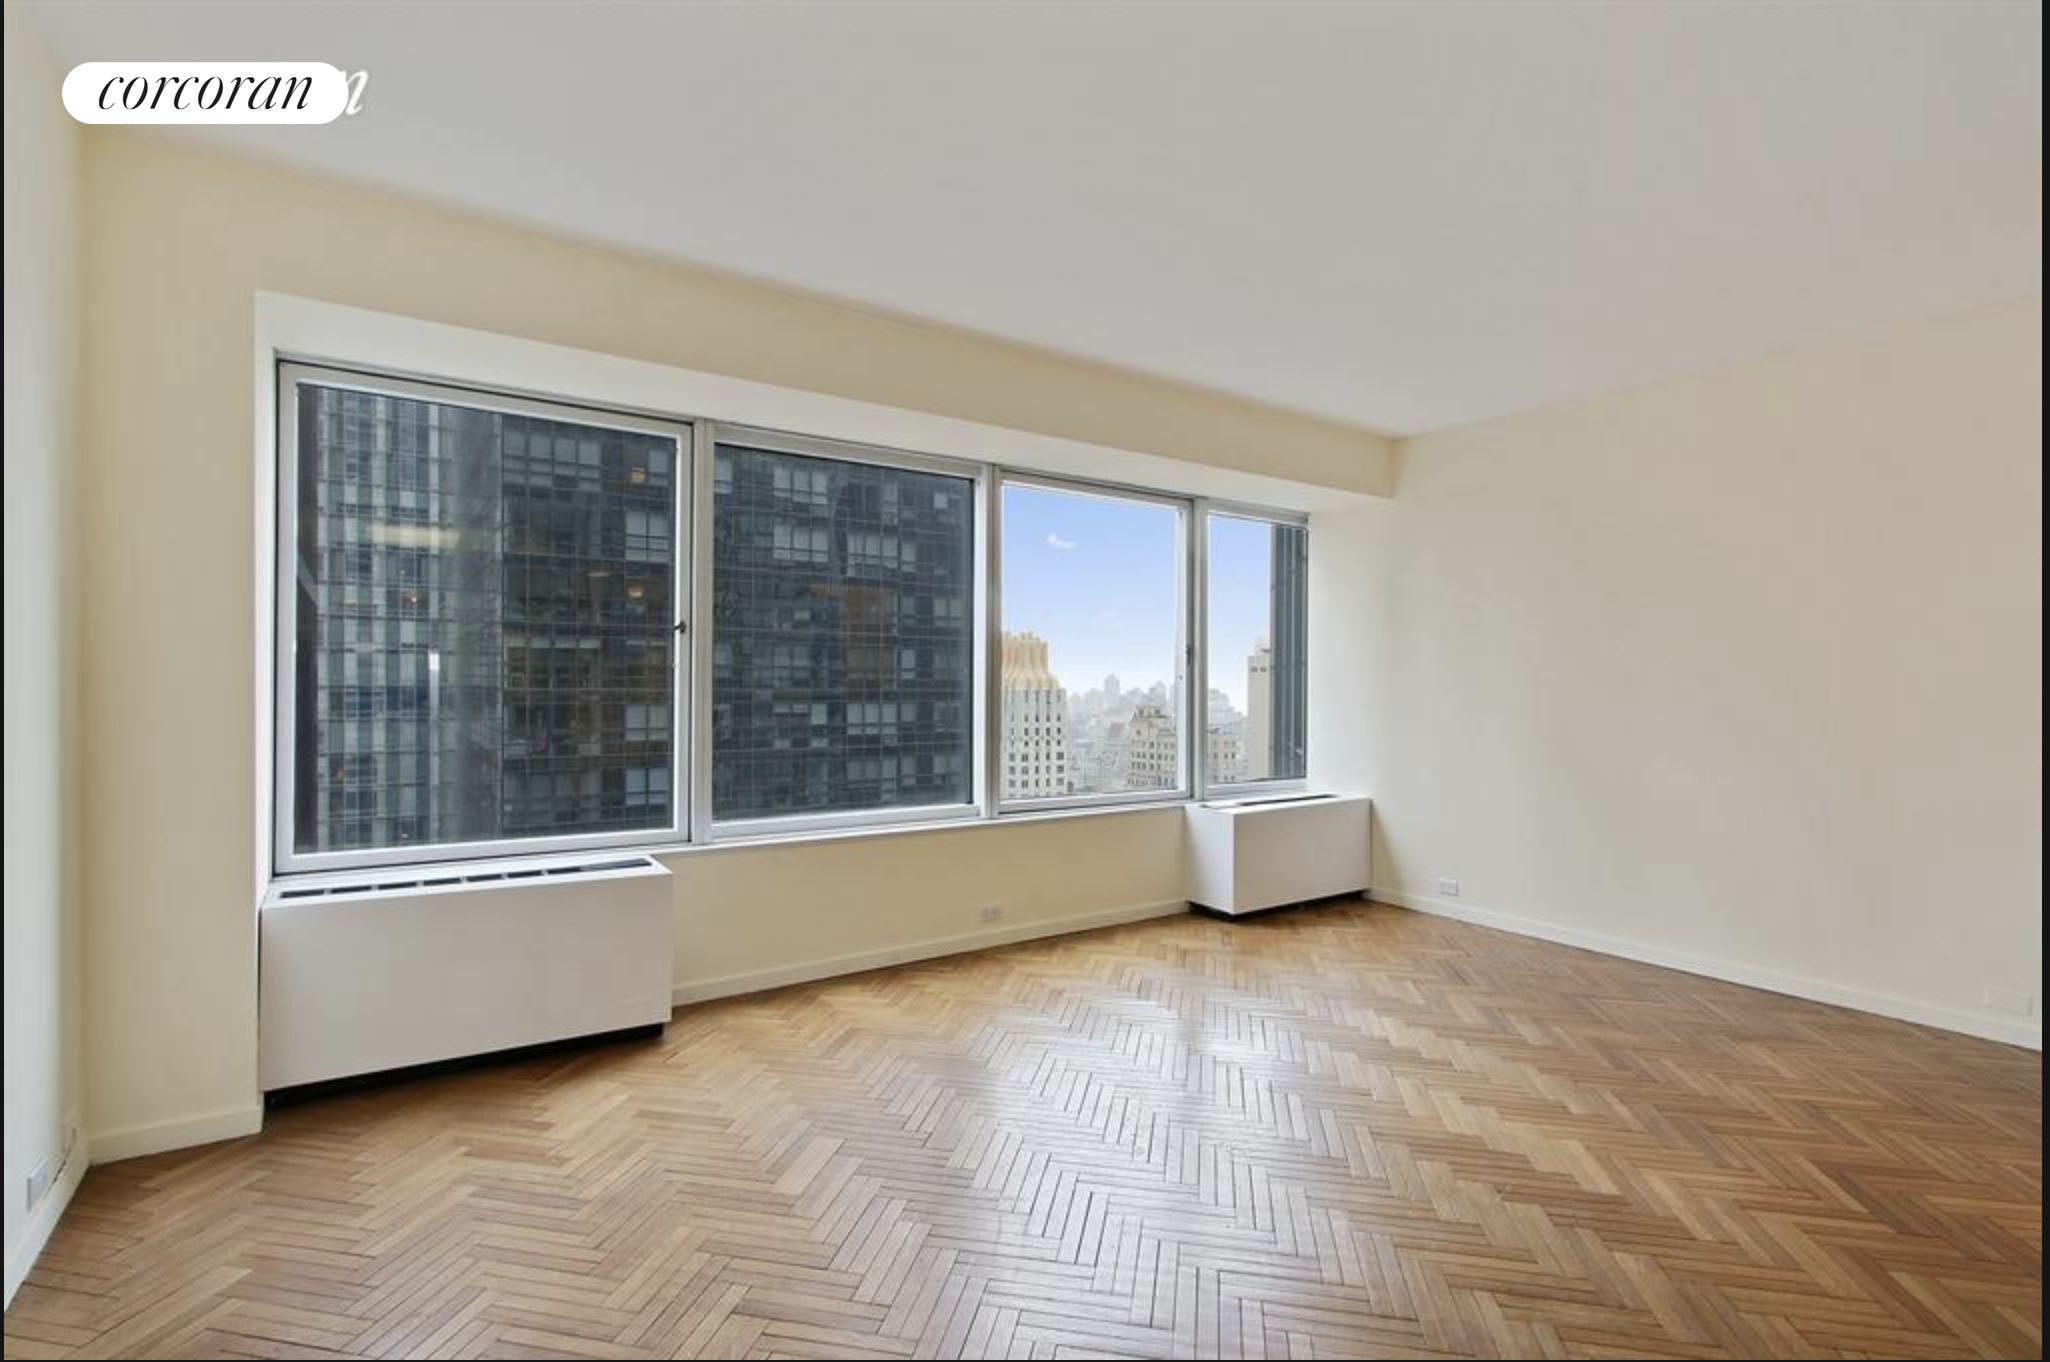 GREAT DEAL on this desirable alcove studio in the sky, with open views! This 36th floor, sunny, oversized studio with a wall of windows taking in sweeping bright open north facing views, sits high above midtown Manhattan in one of the neighborhood's most well-known condominiums, City Spire. There are hardwood herringbone floors throughout, a pass through kitchen with stainless appliances, three good sized closets and room for a separate sleeping area, and spacious living/dining. Enjoy the convenience of a washer/dryer on the floor!  No pets allowed. CYOF, ALSO!City Spire is a full service condominium with 24-hour doorman and concierge, a state-of-the-art health club with 50' pool, sauna and steam room, playroom, business center, and parking garage. There is even laundry on every floor. Conveniently located near transportation, shopping, restaurants, Columbus Circle, and Central Park.Video Tour: https://youtu.be/sLkufzedujA